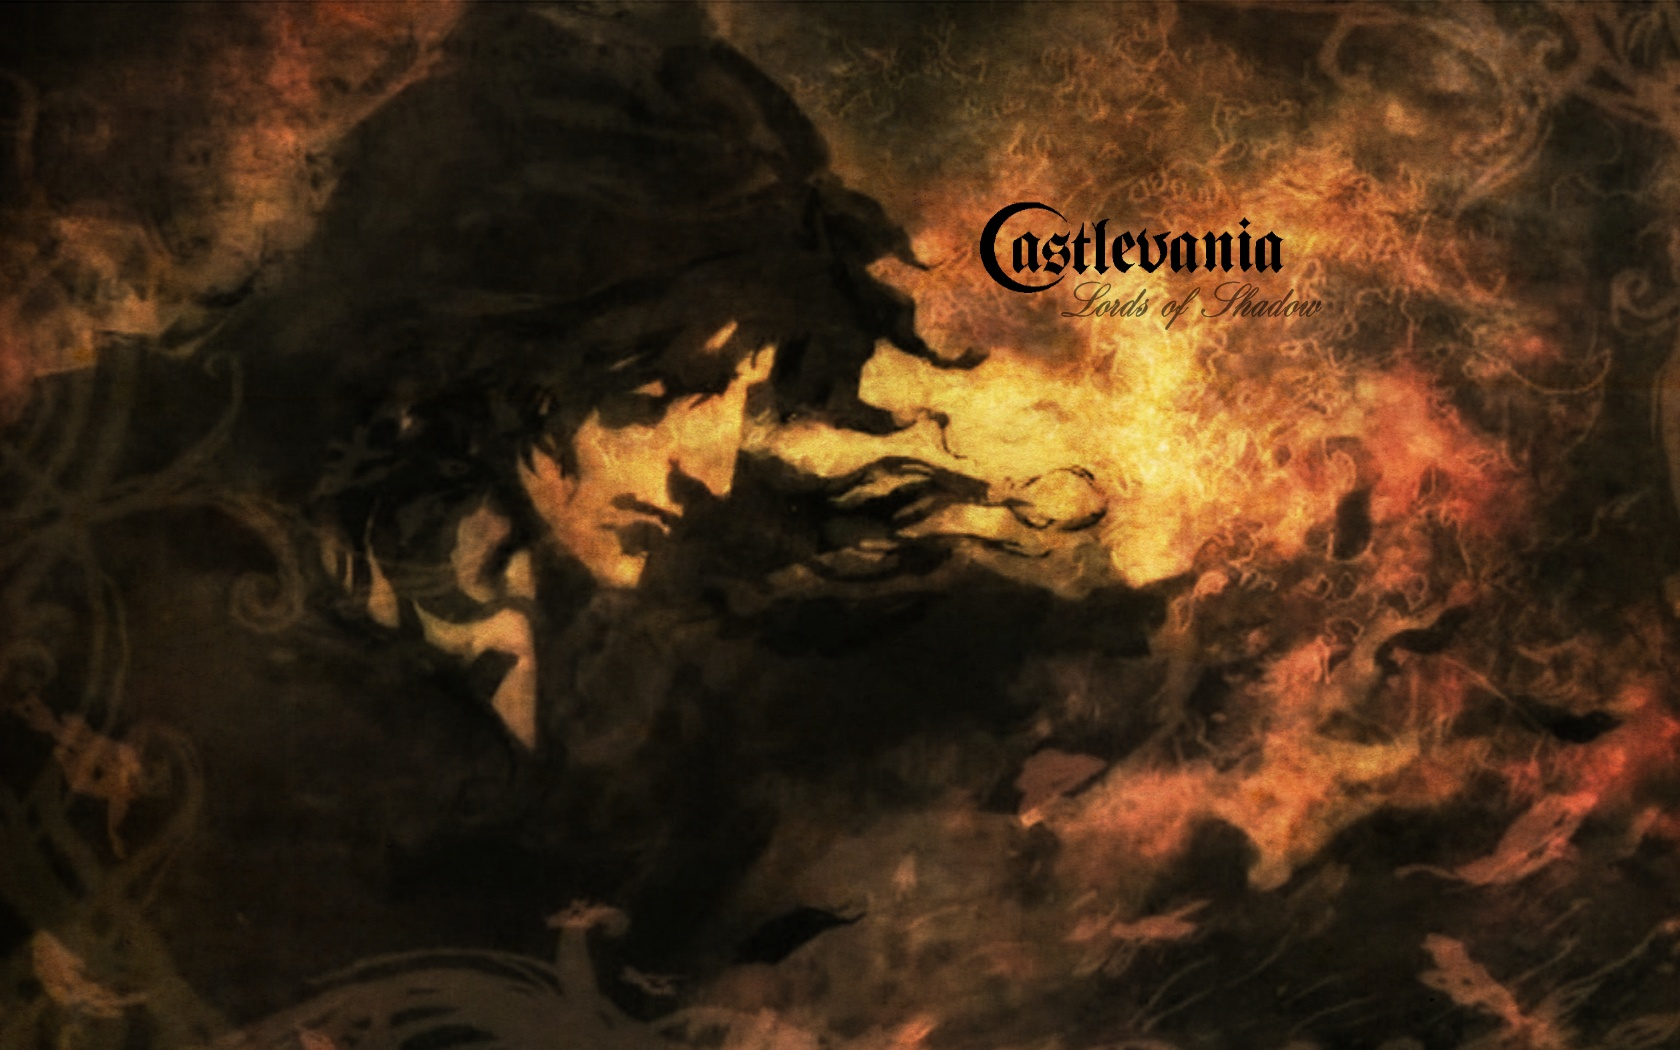 castlevania lords of shadow 2 walkthrough pdf download